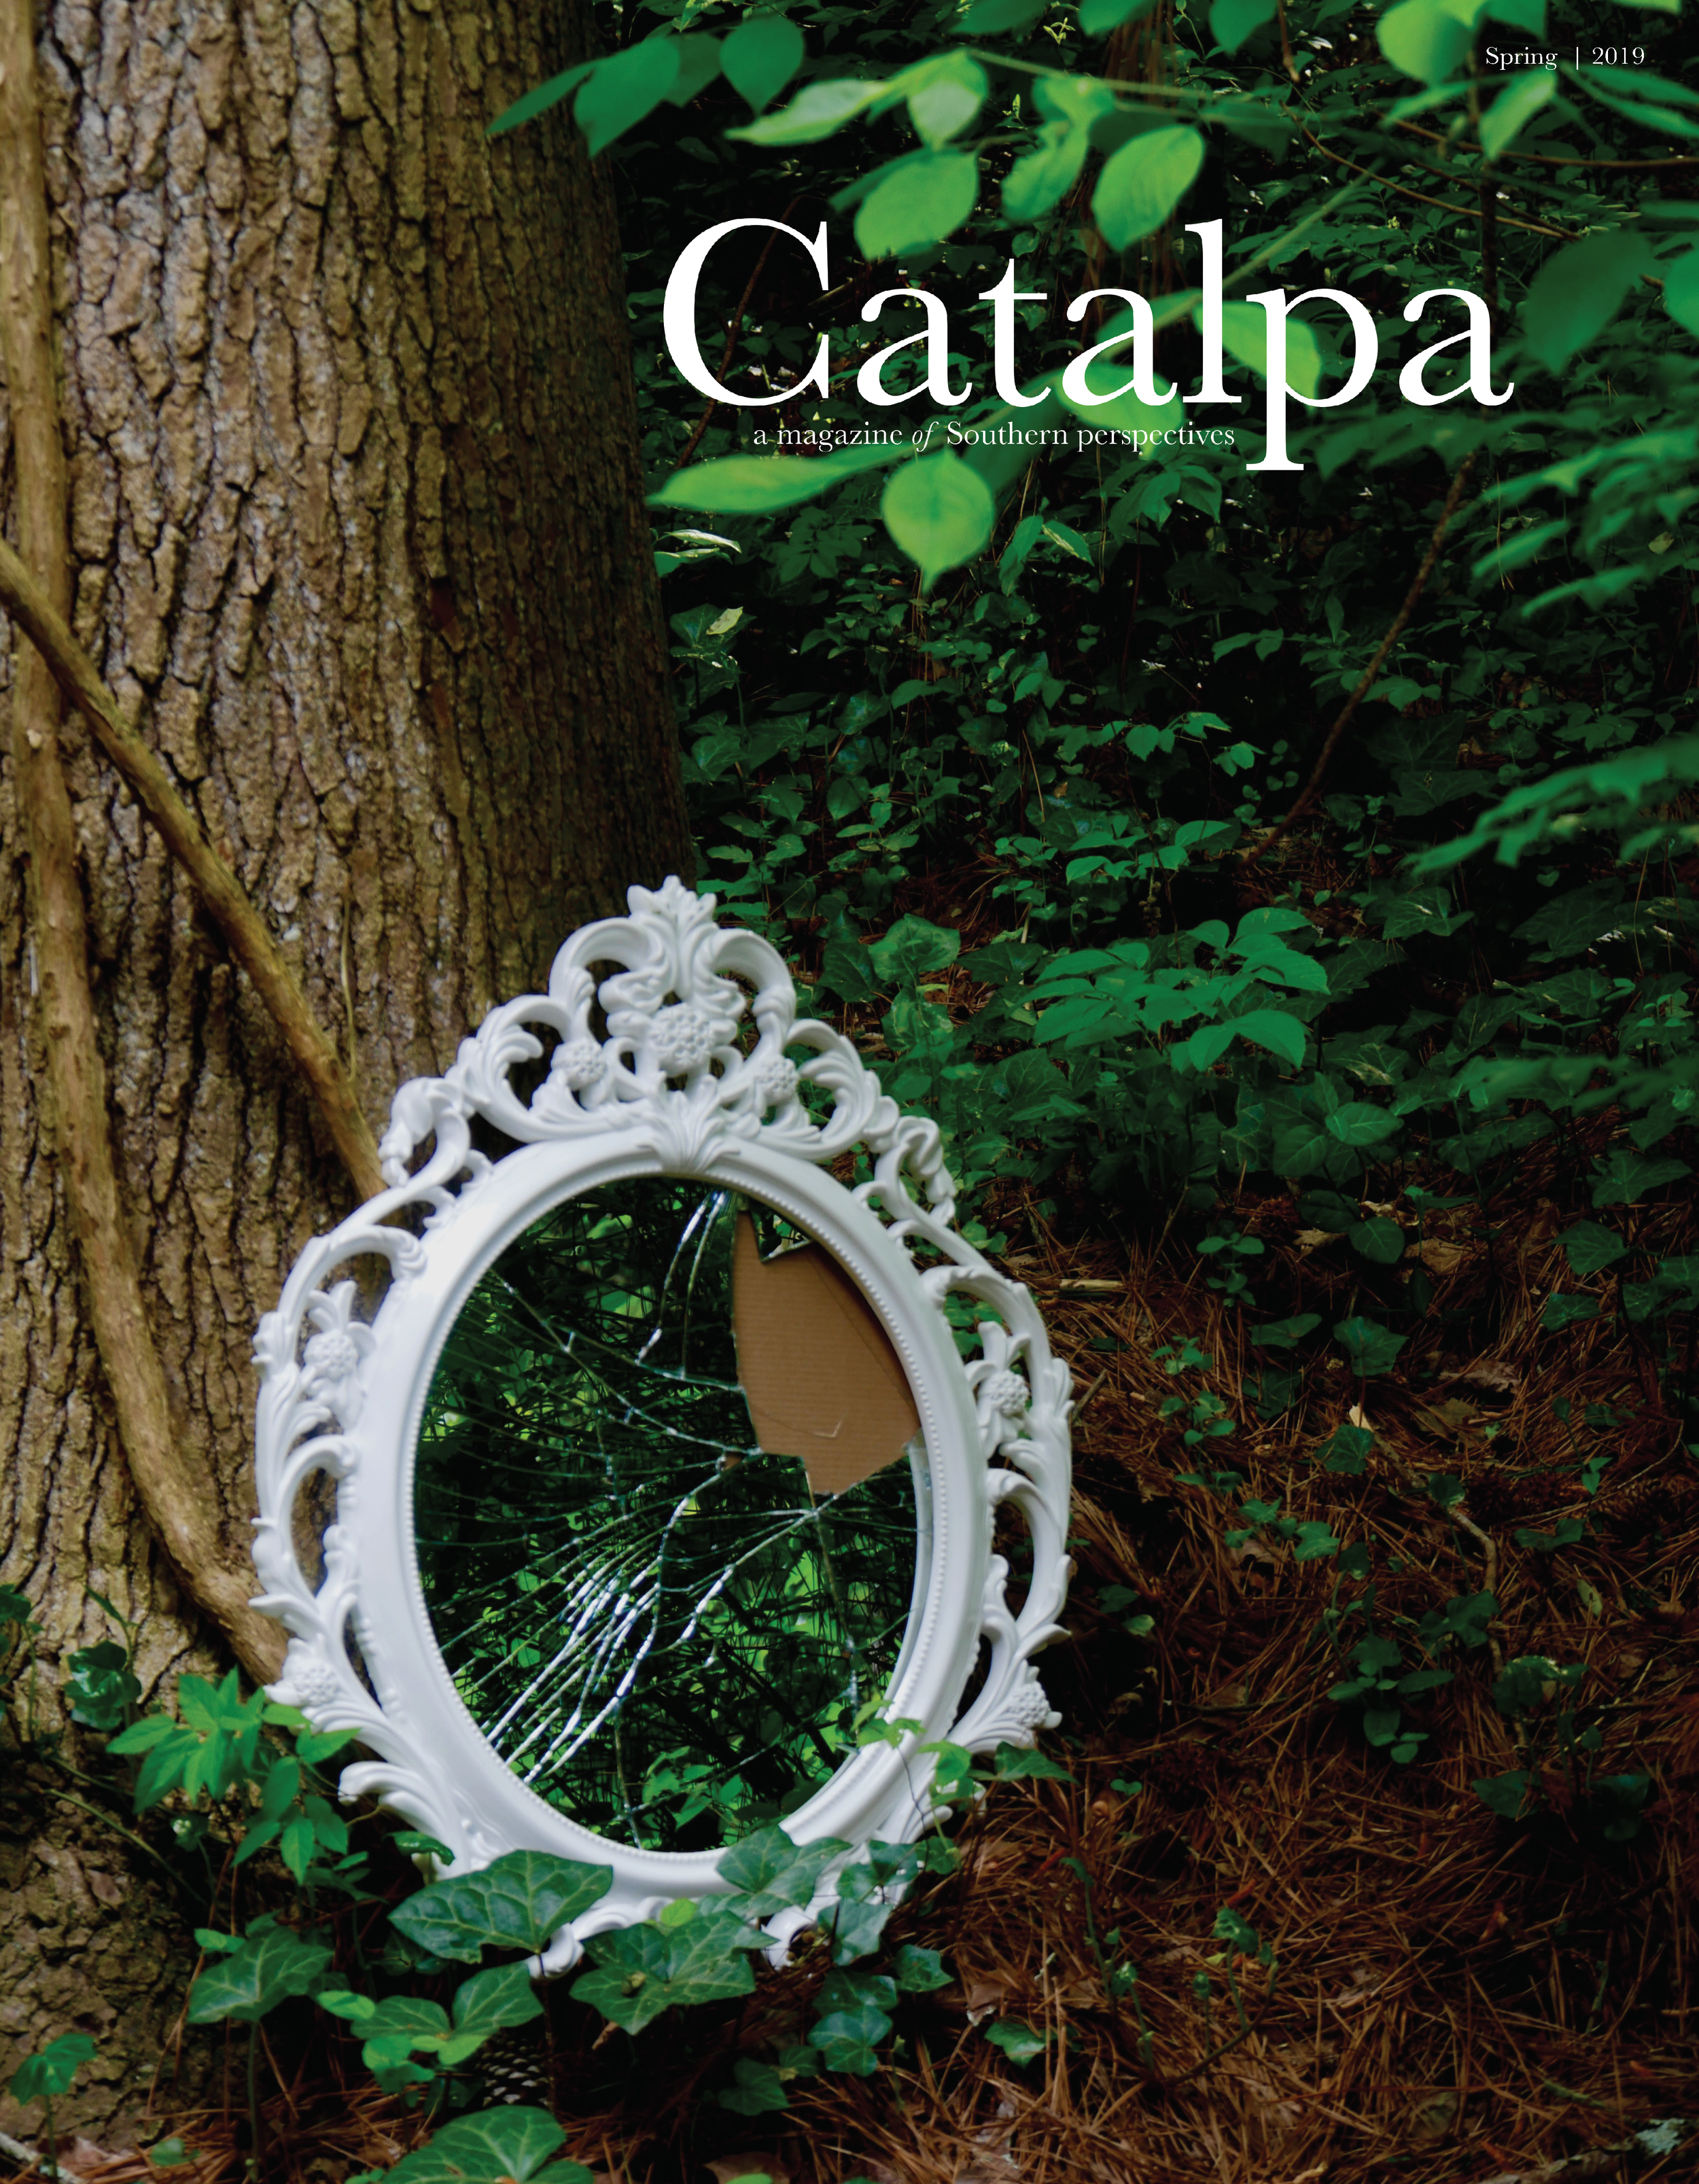 Spring 2019 - The newest issue of Catalpa features works centered around the deep-rooted complications and complexities of the contemporary Southern woman.